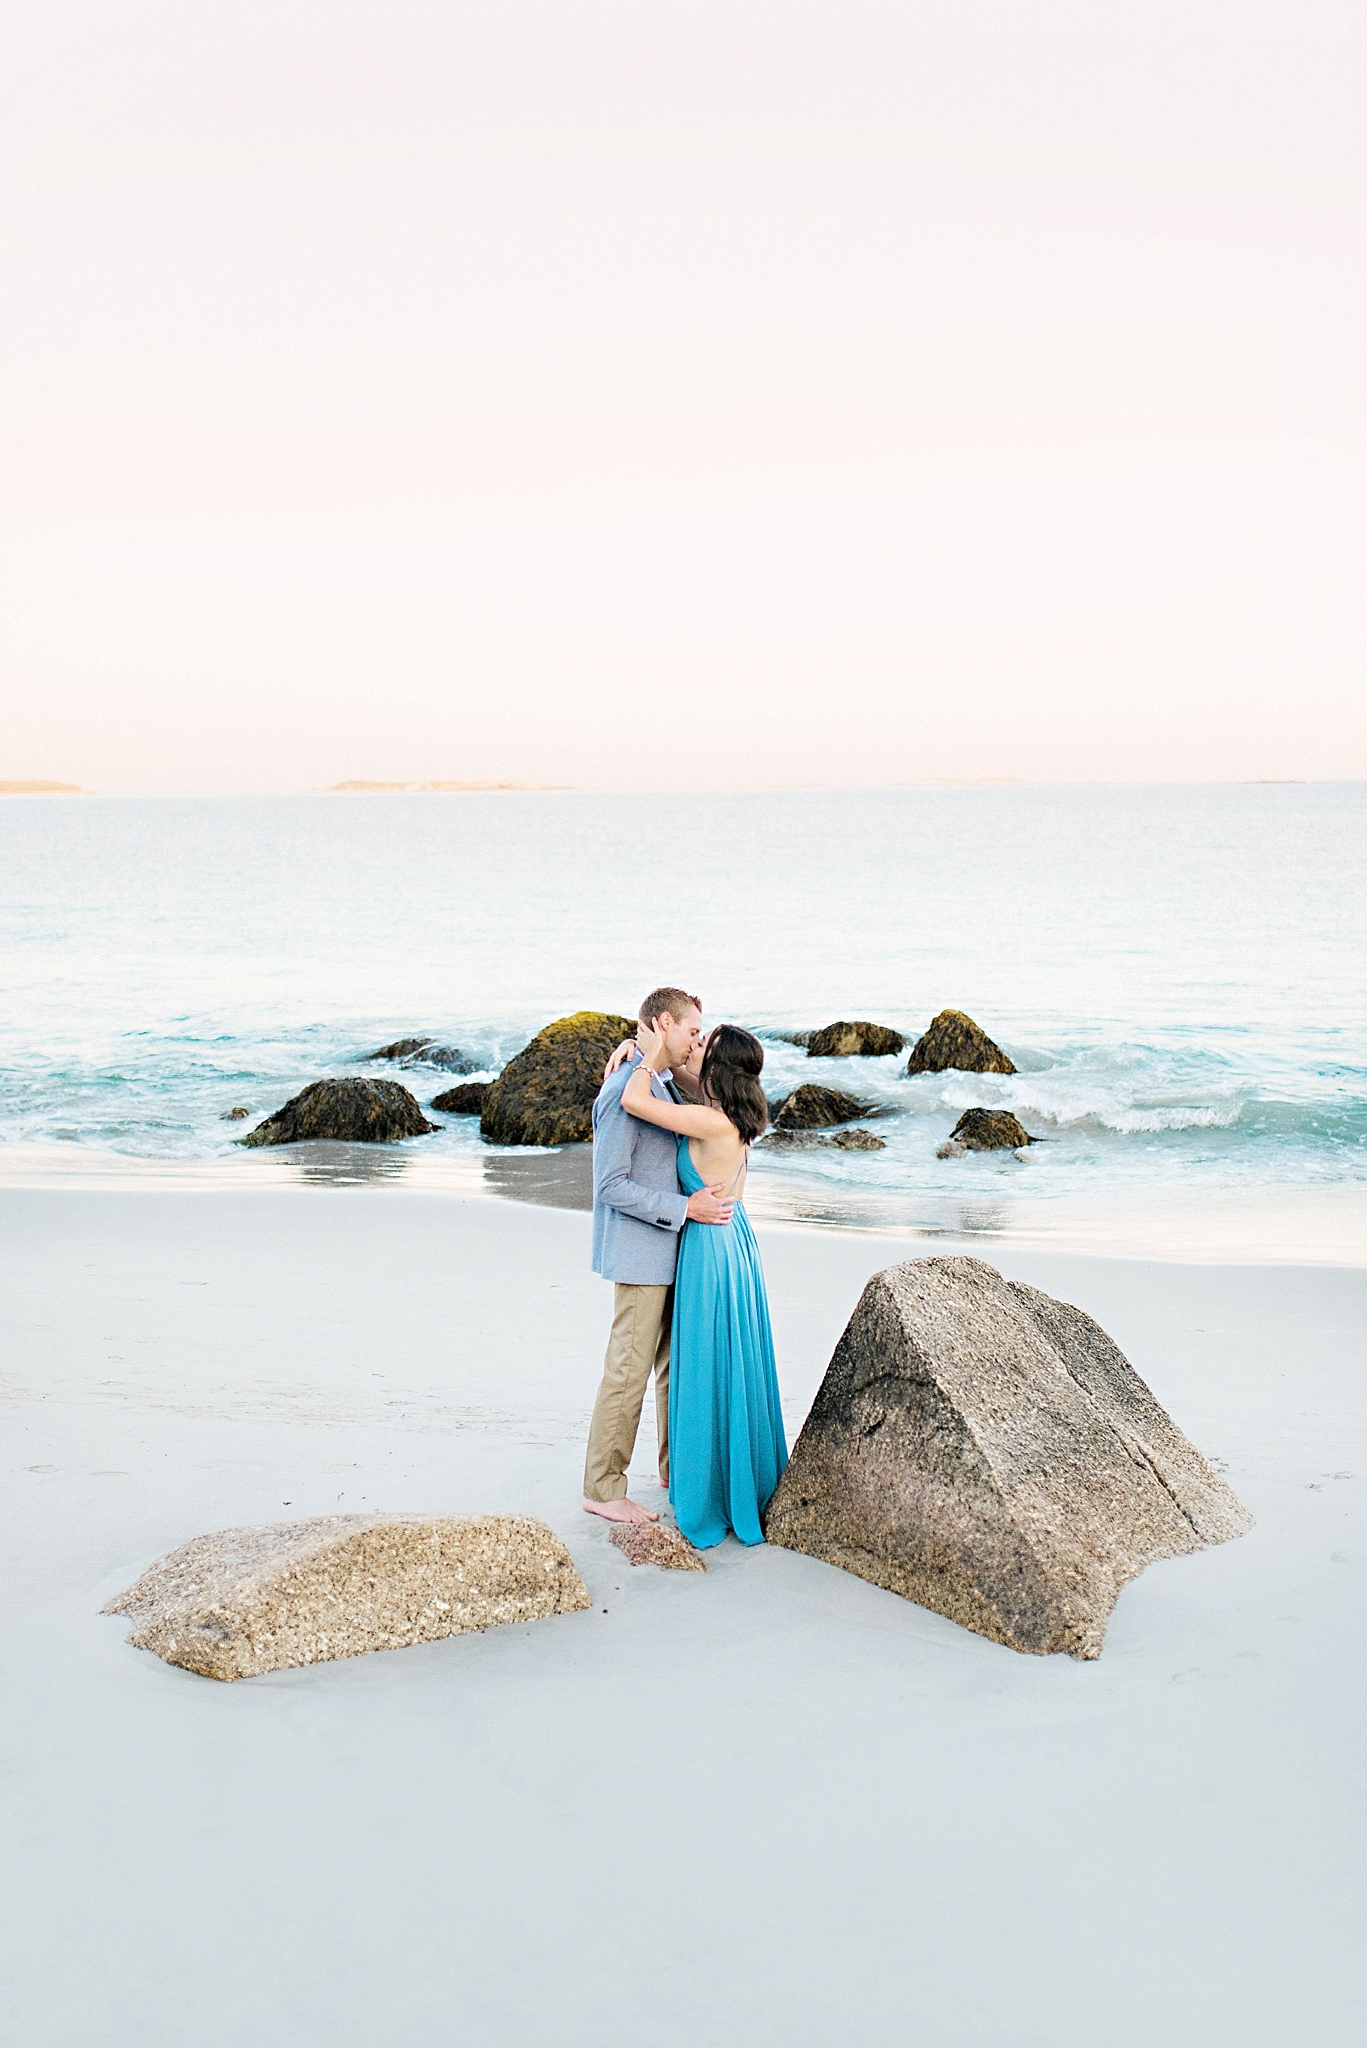 Romantic Seaside Beach Engagement Shoot in Lulu's long flowy maxy dress_035.jpg